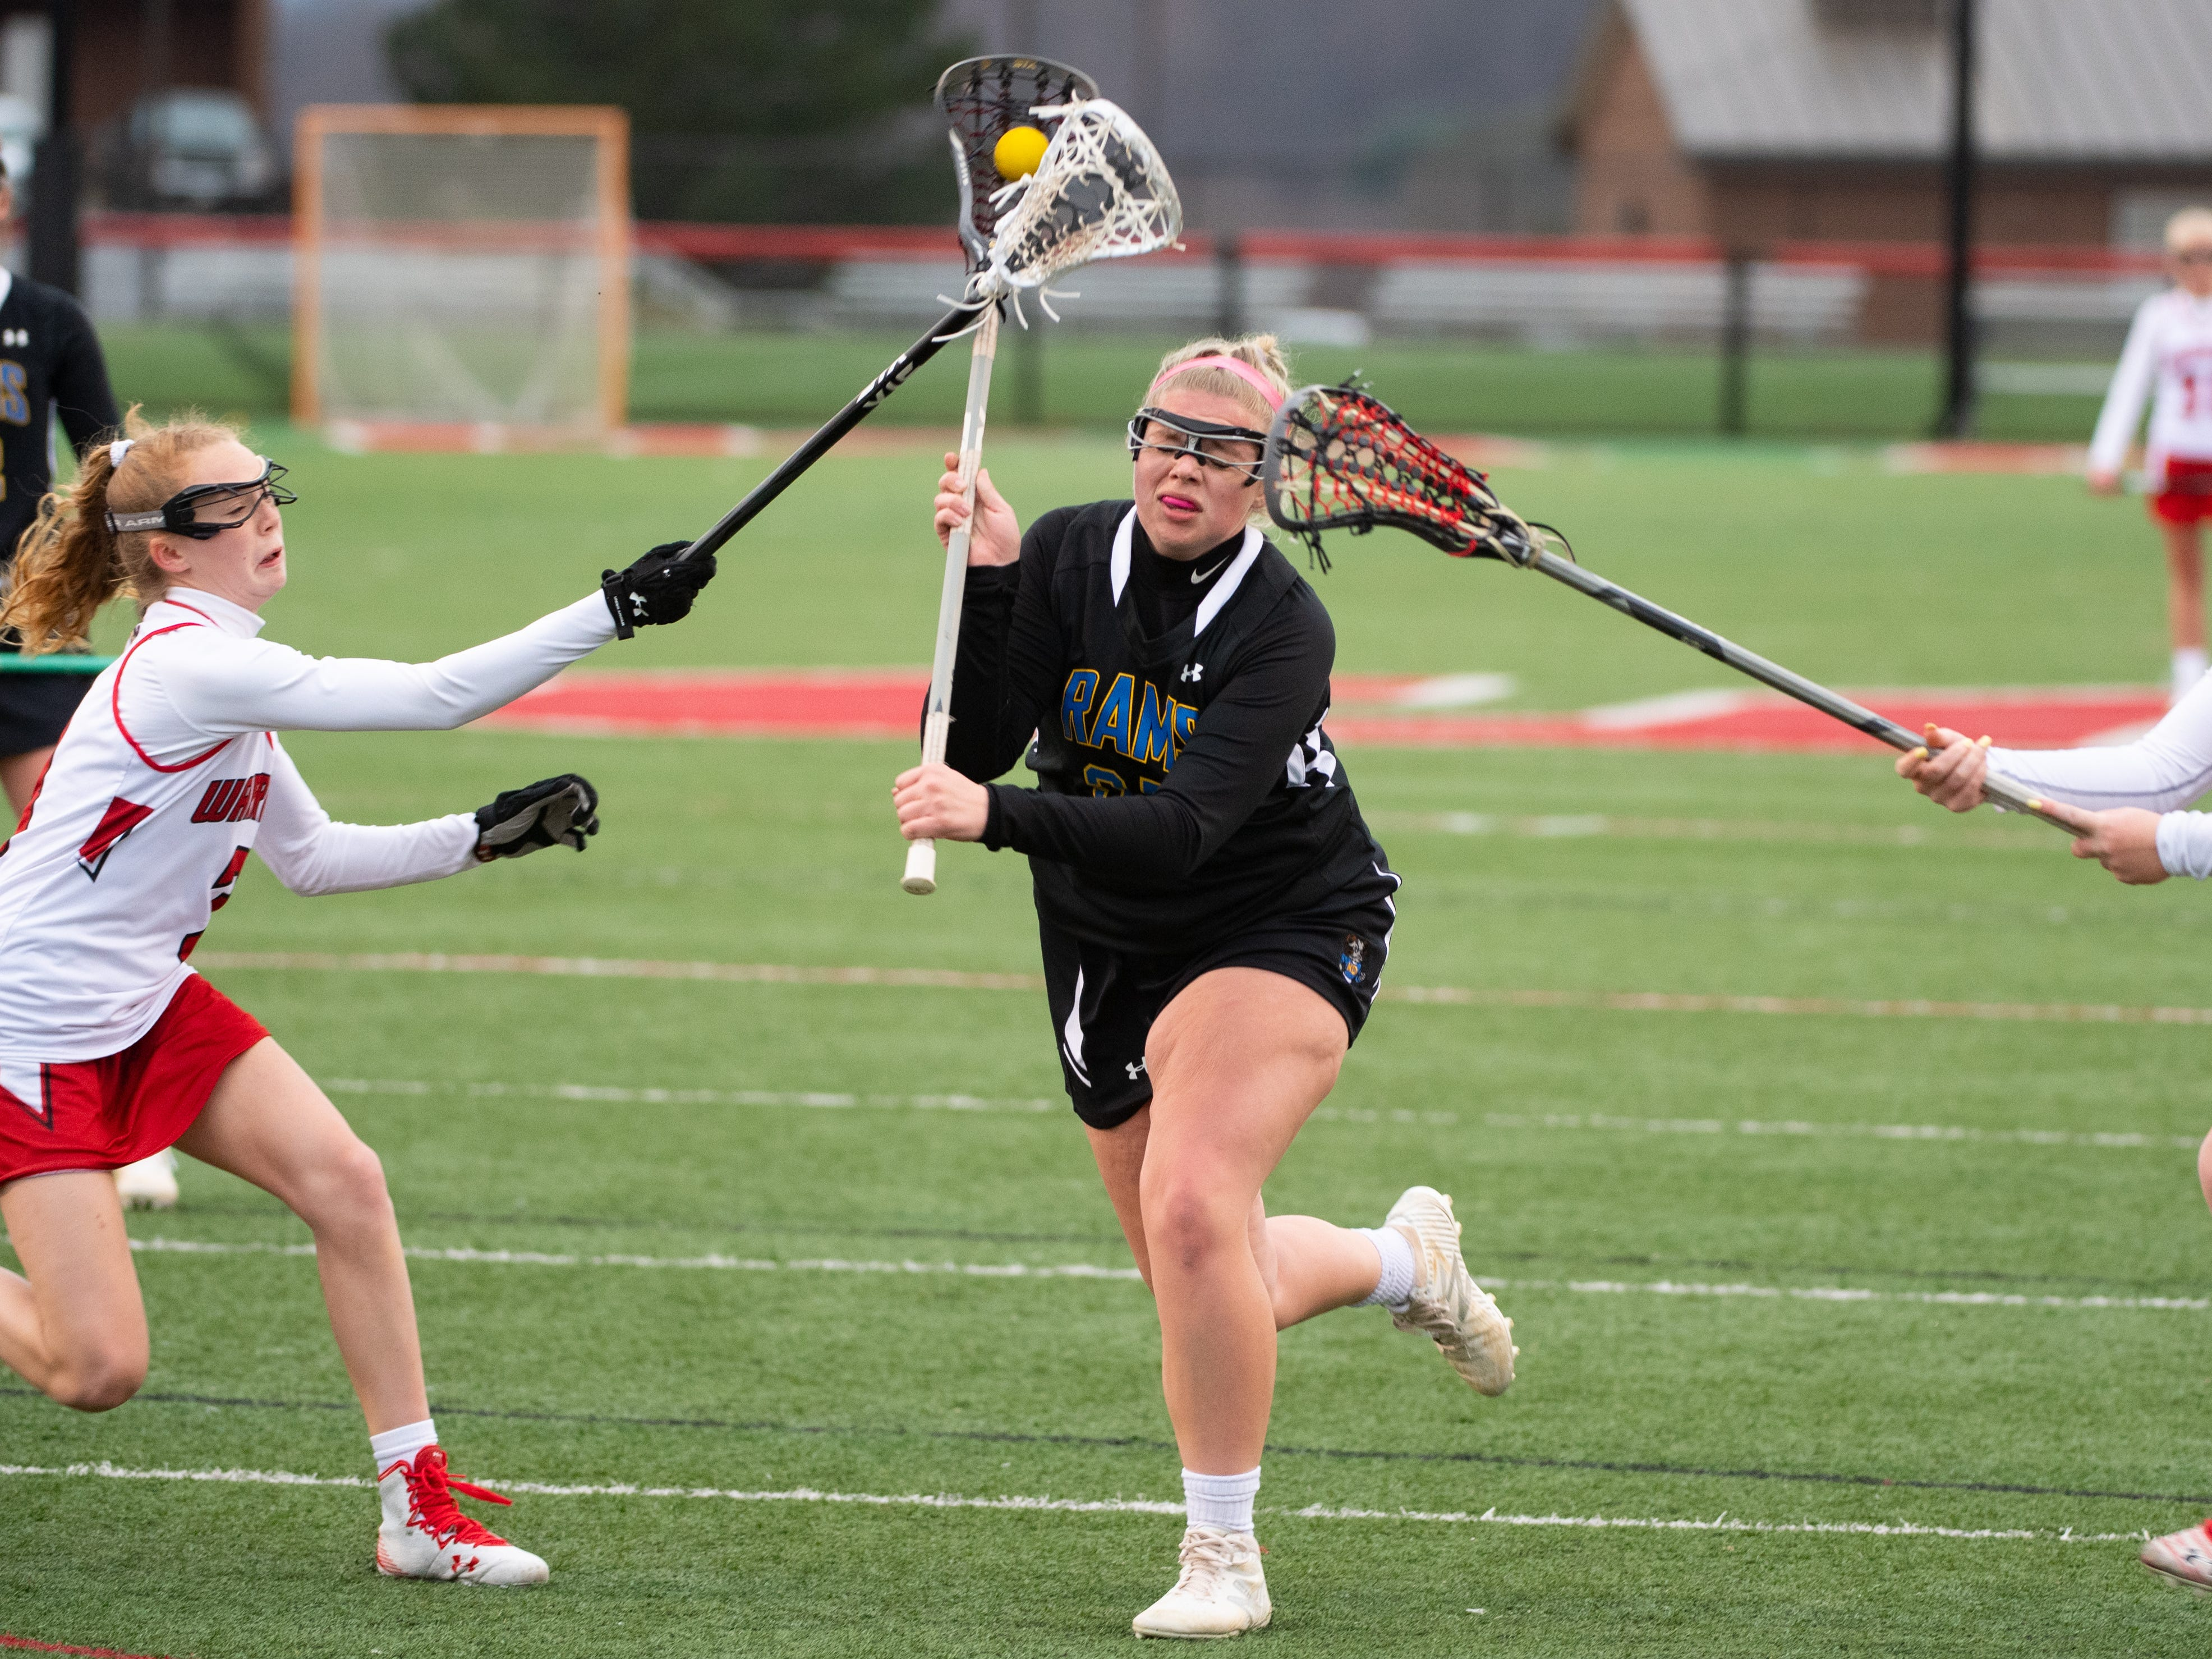 Jackie Dalton (37) tries to break through during the girls' lacrosse game between Susquehannock and Kennard-Dale, April 2, 2019 at Susquehannock High School. The Rams defeated the Warriors 17 to 2.